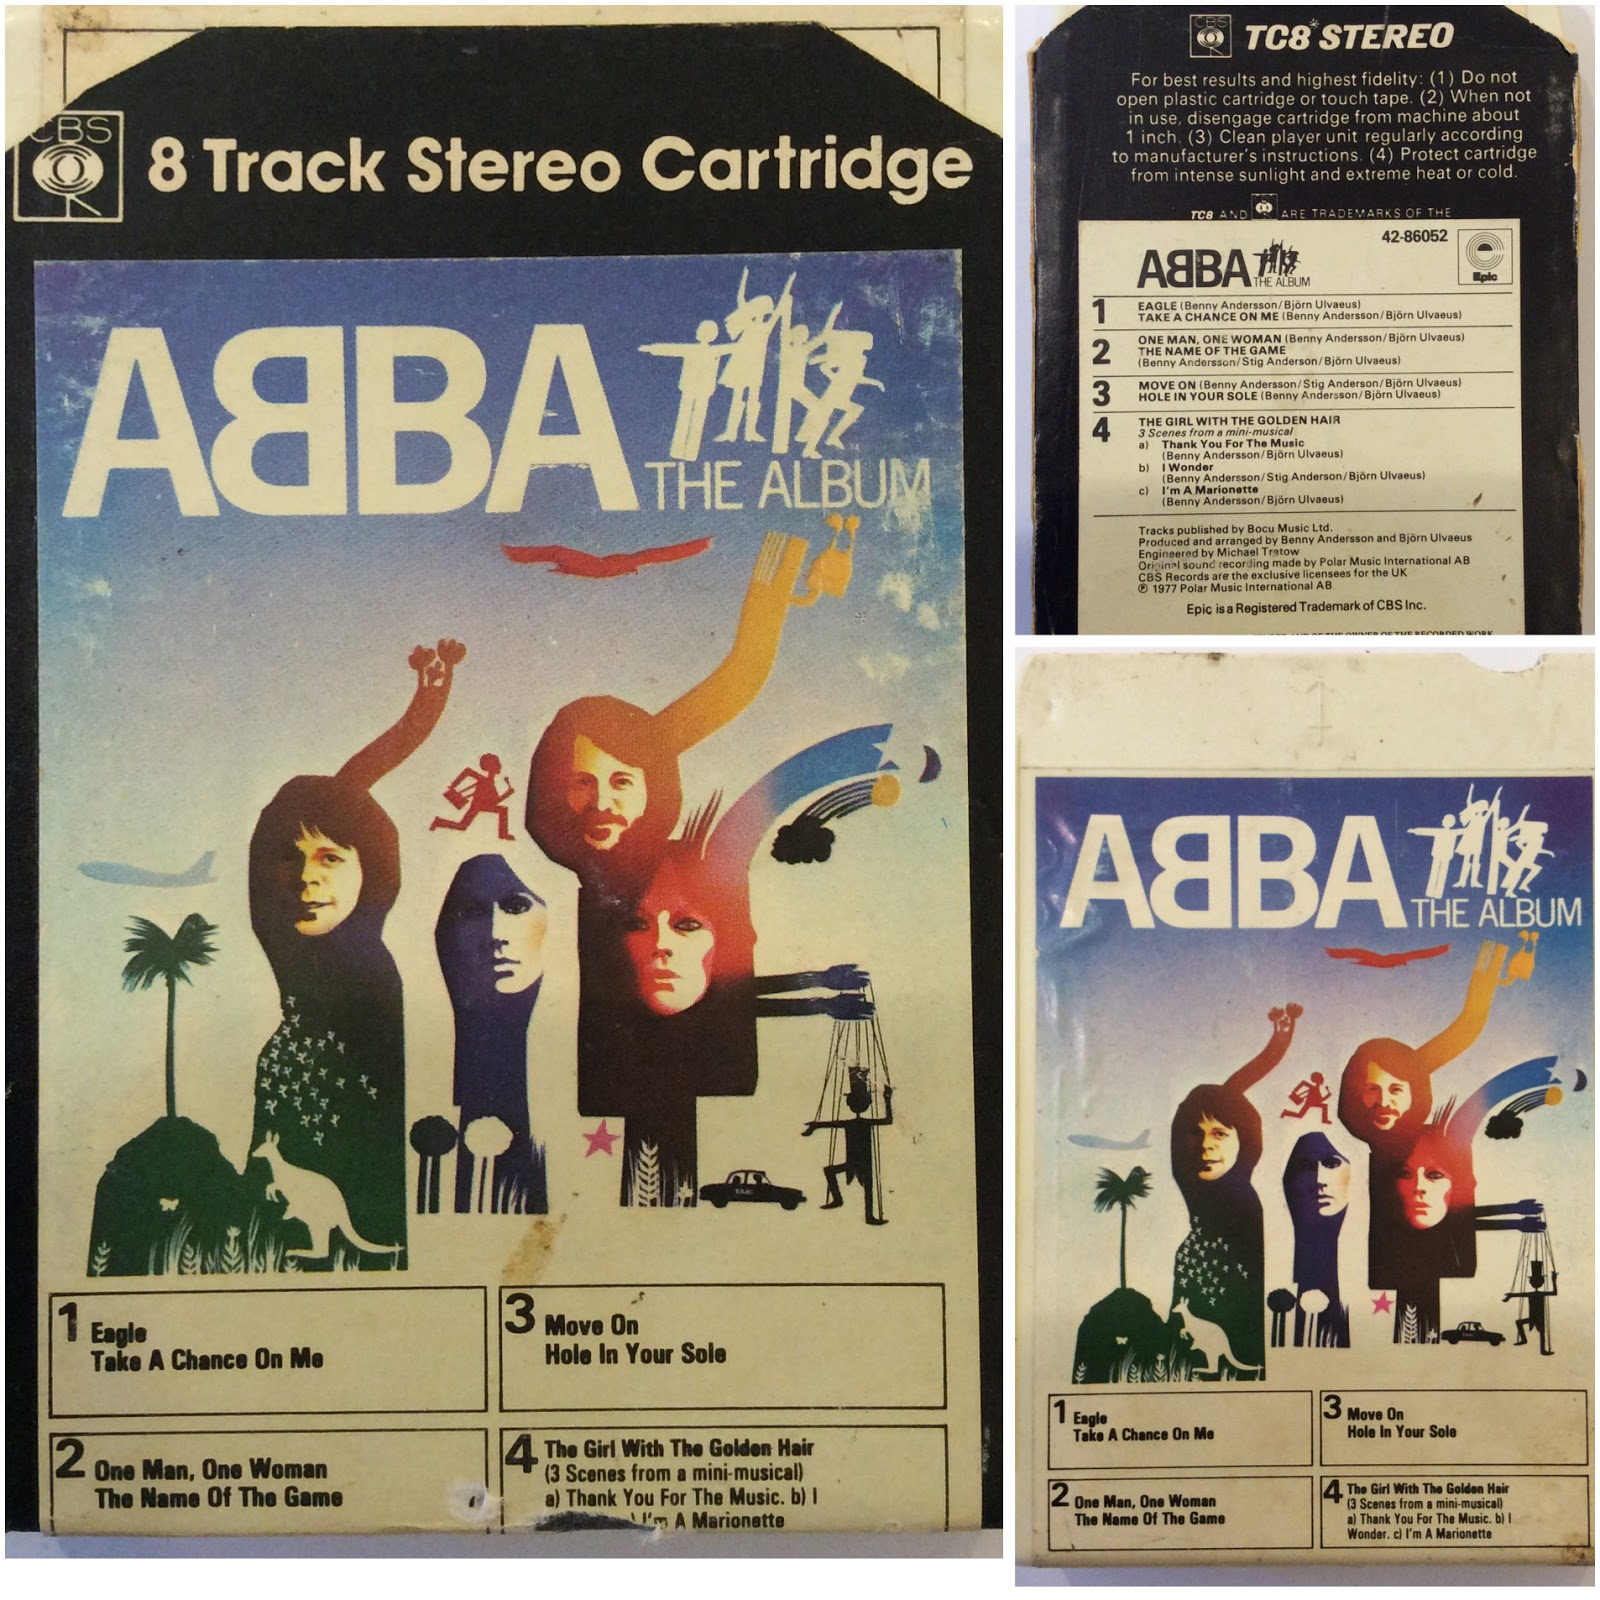 ABBA – The Album. An 8-track tape